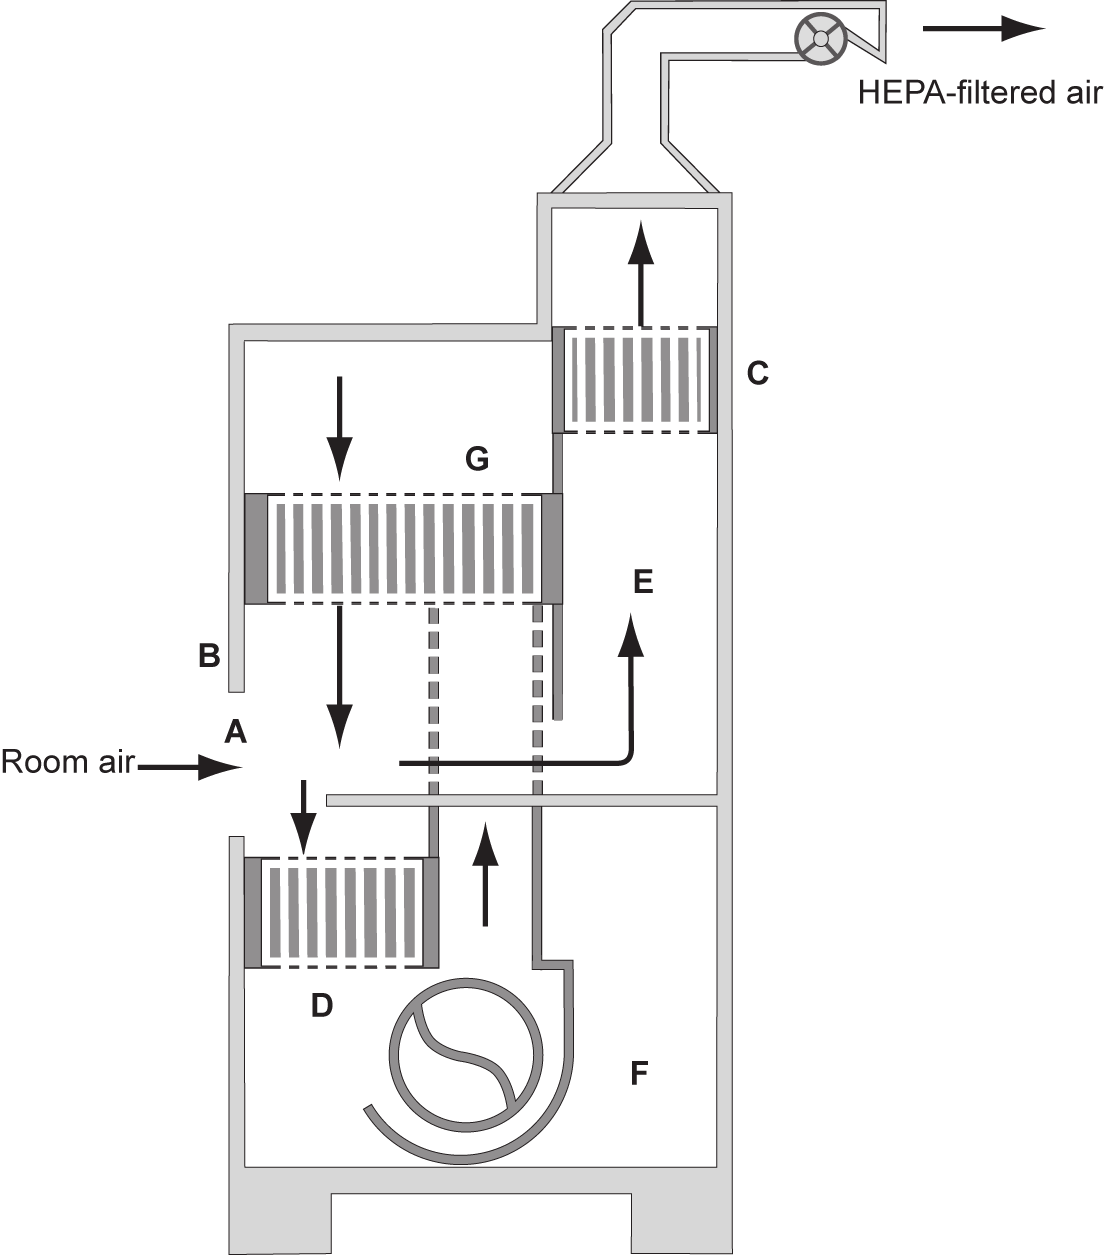 unit; (E) BSC. Note: There is a 1 gap between the canopy unit (D) and the exhaust filter housing (C), through which room air is exhausted. Figure 5A.